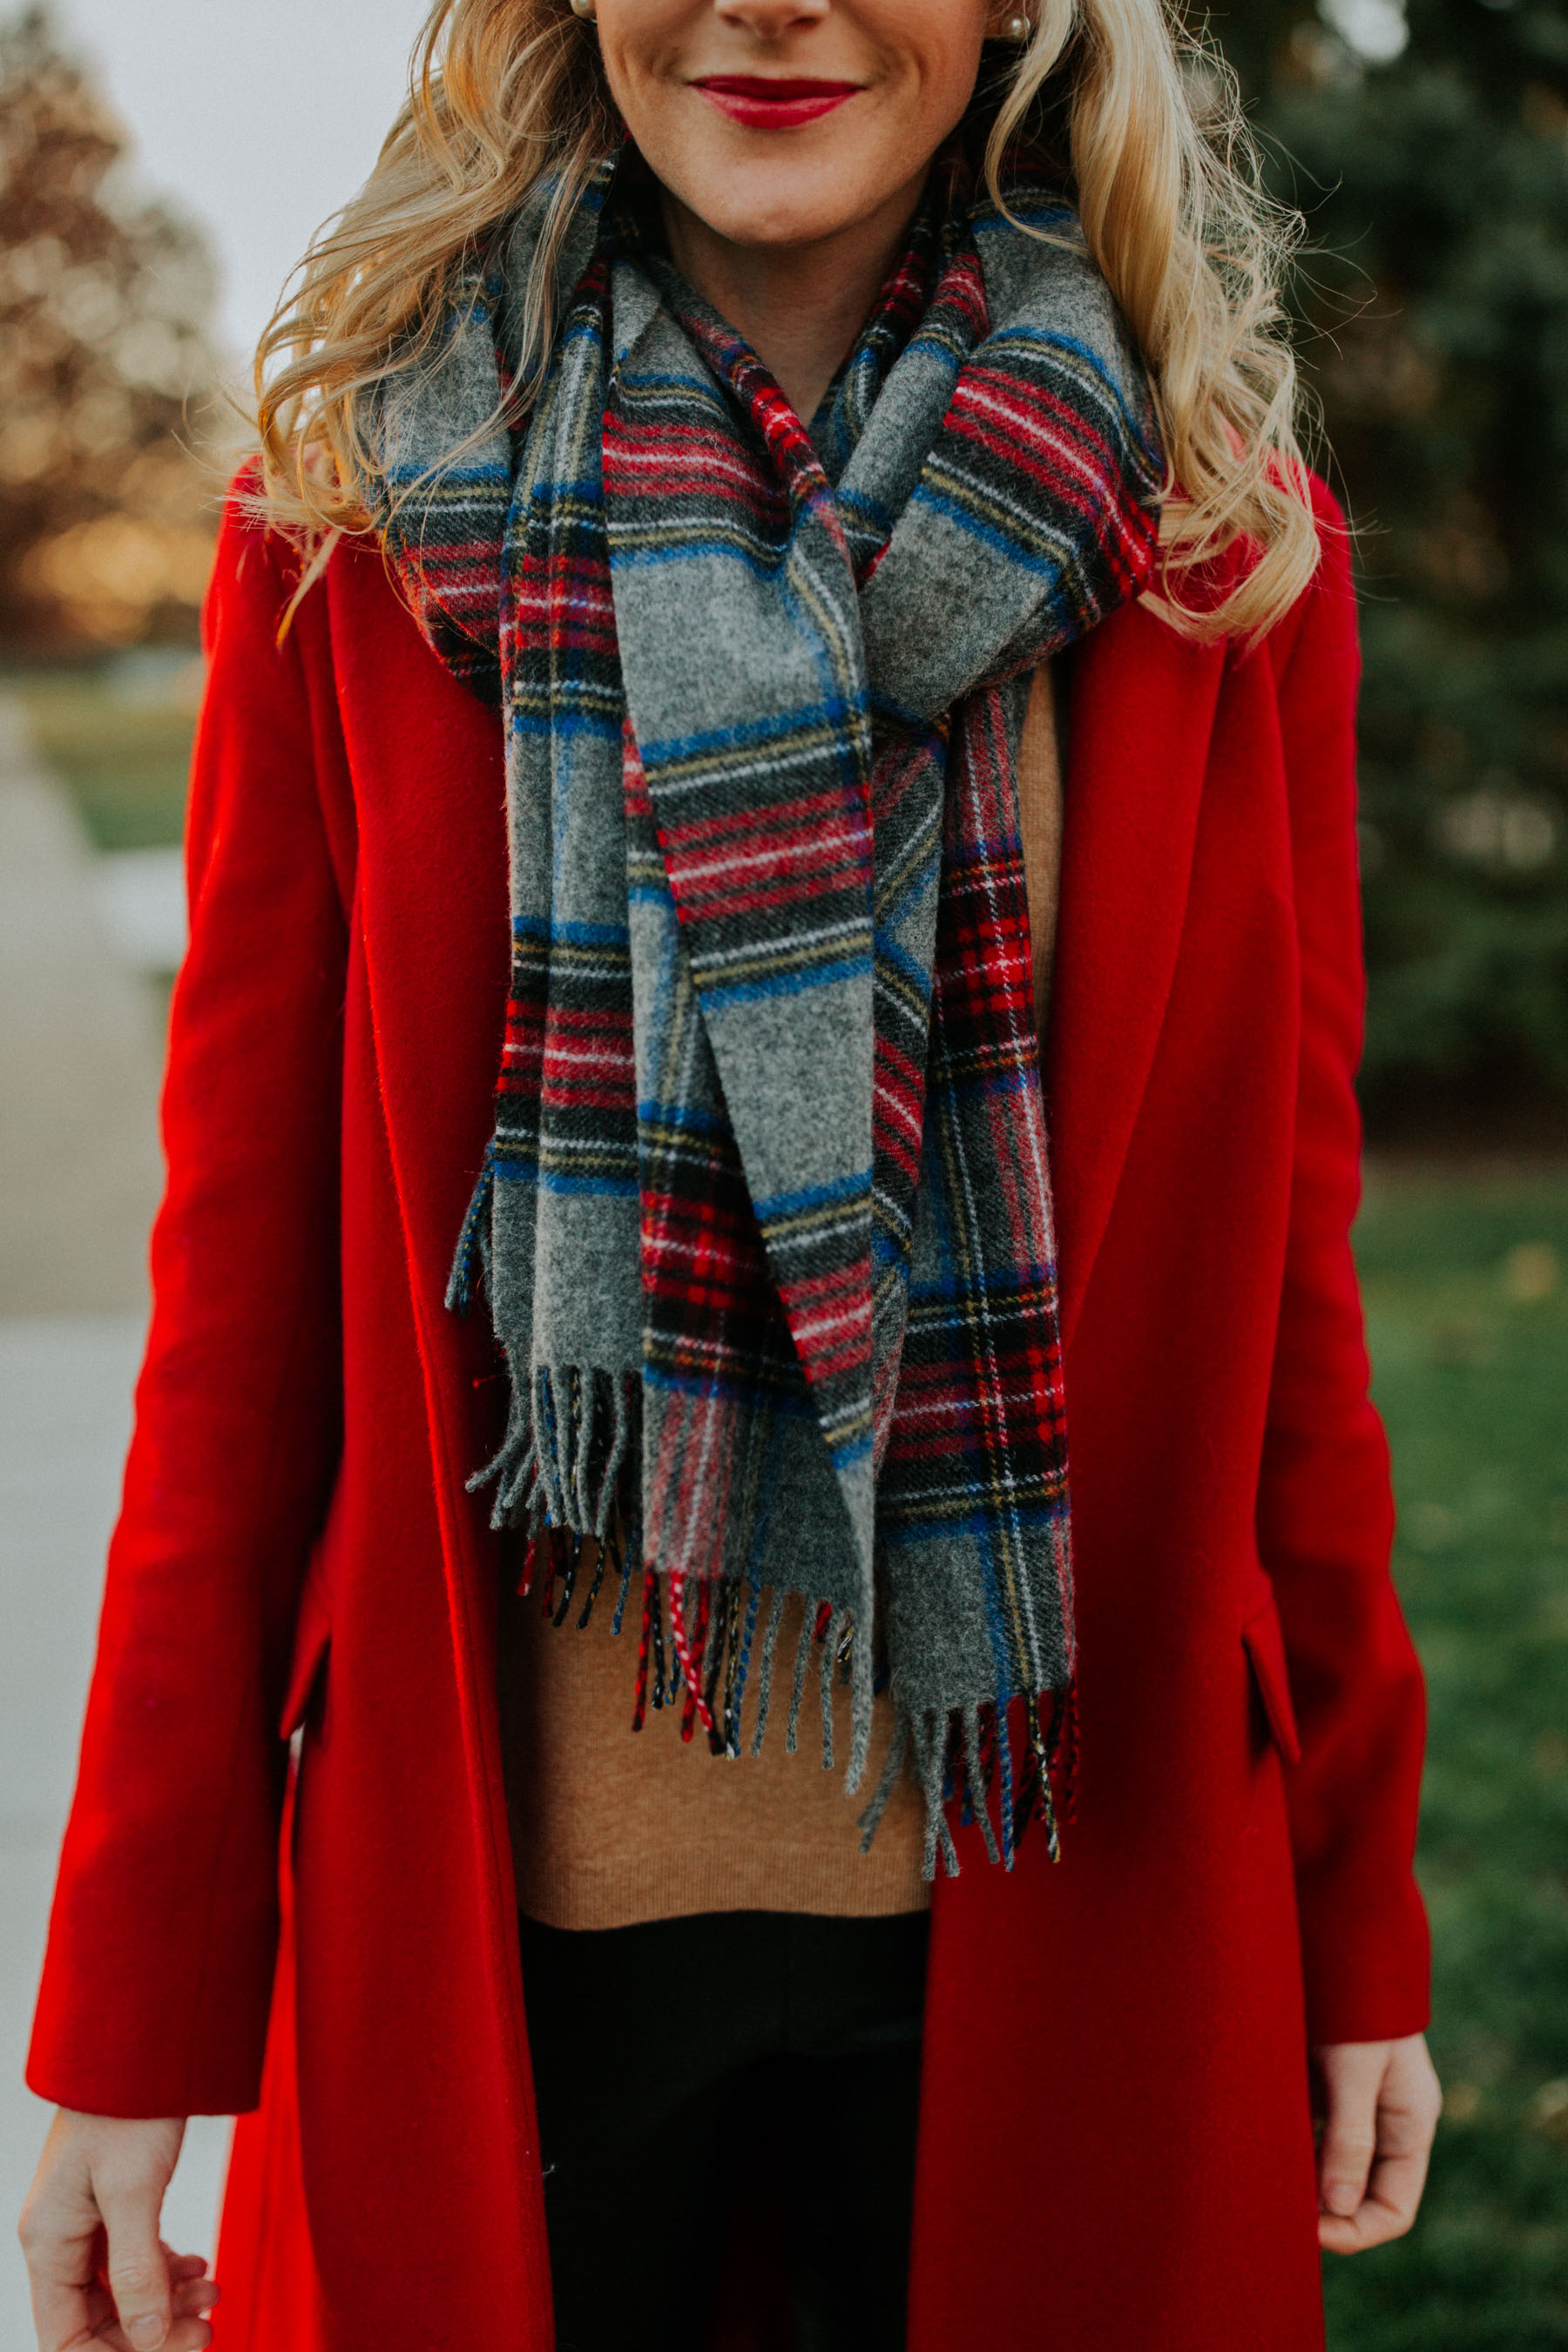 Casual Preppy Christmas Outfit: Plaid scarf, red coat, red lips